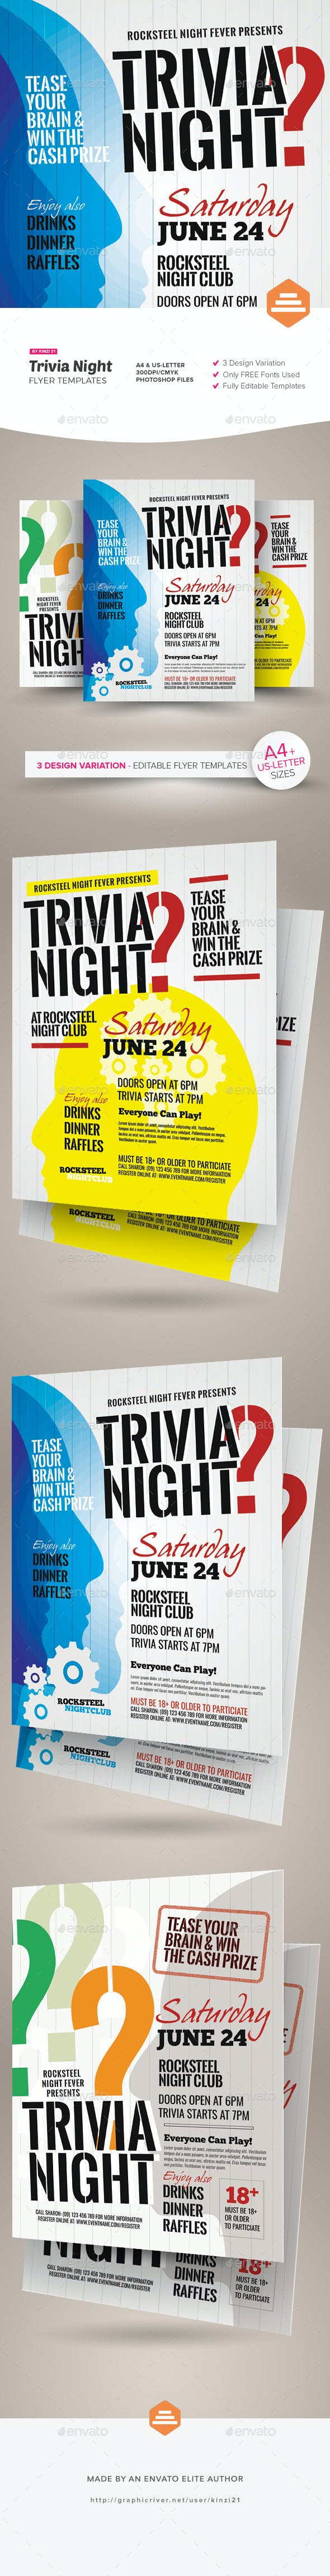 trivia night flyer templates by kinzi21 graphicriver